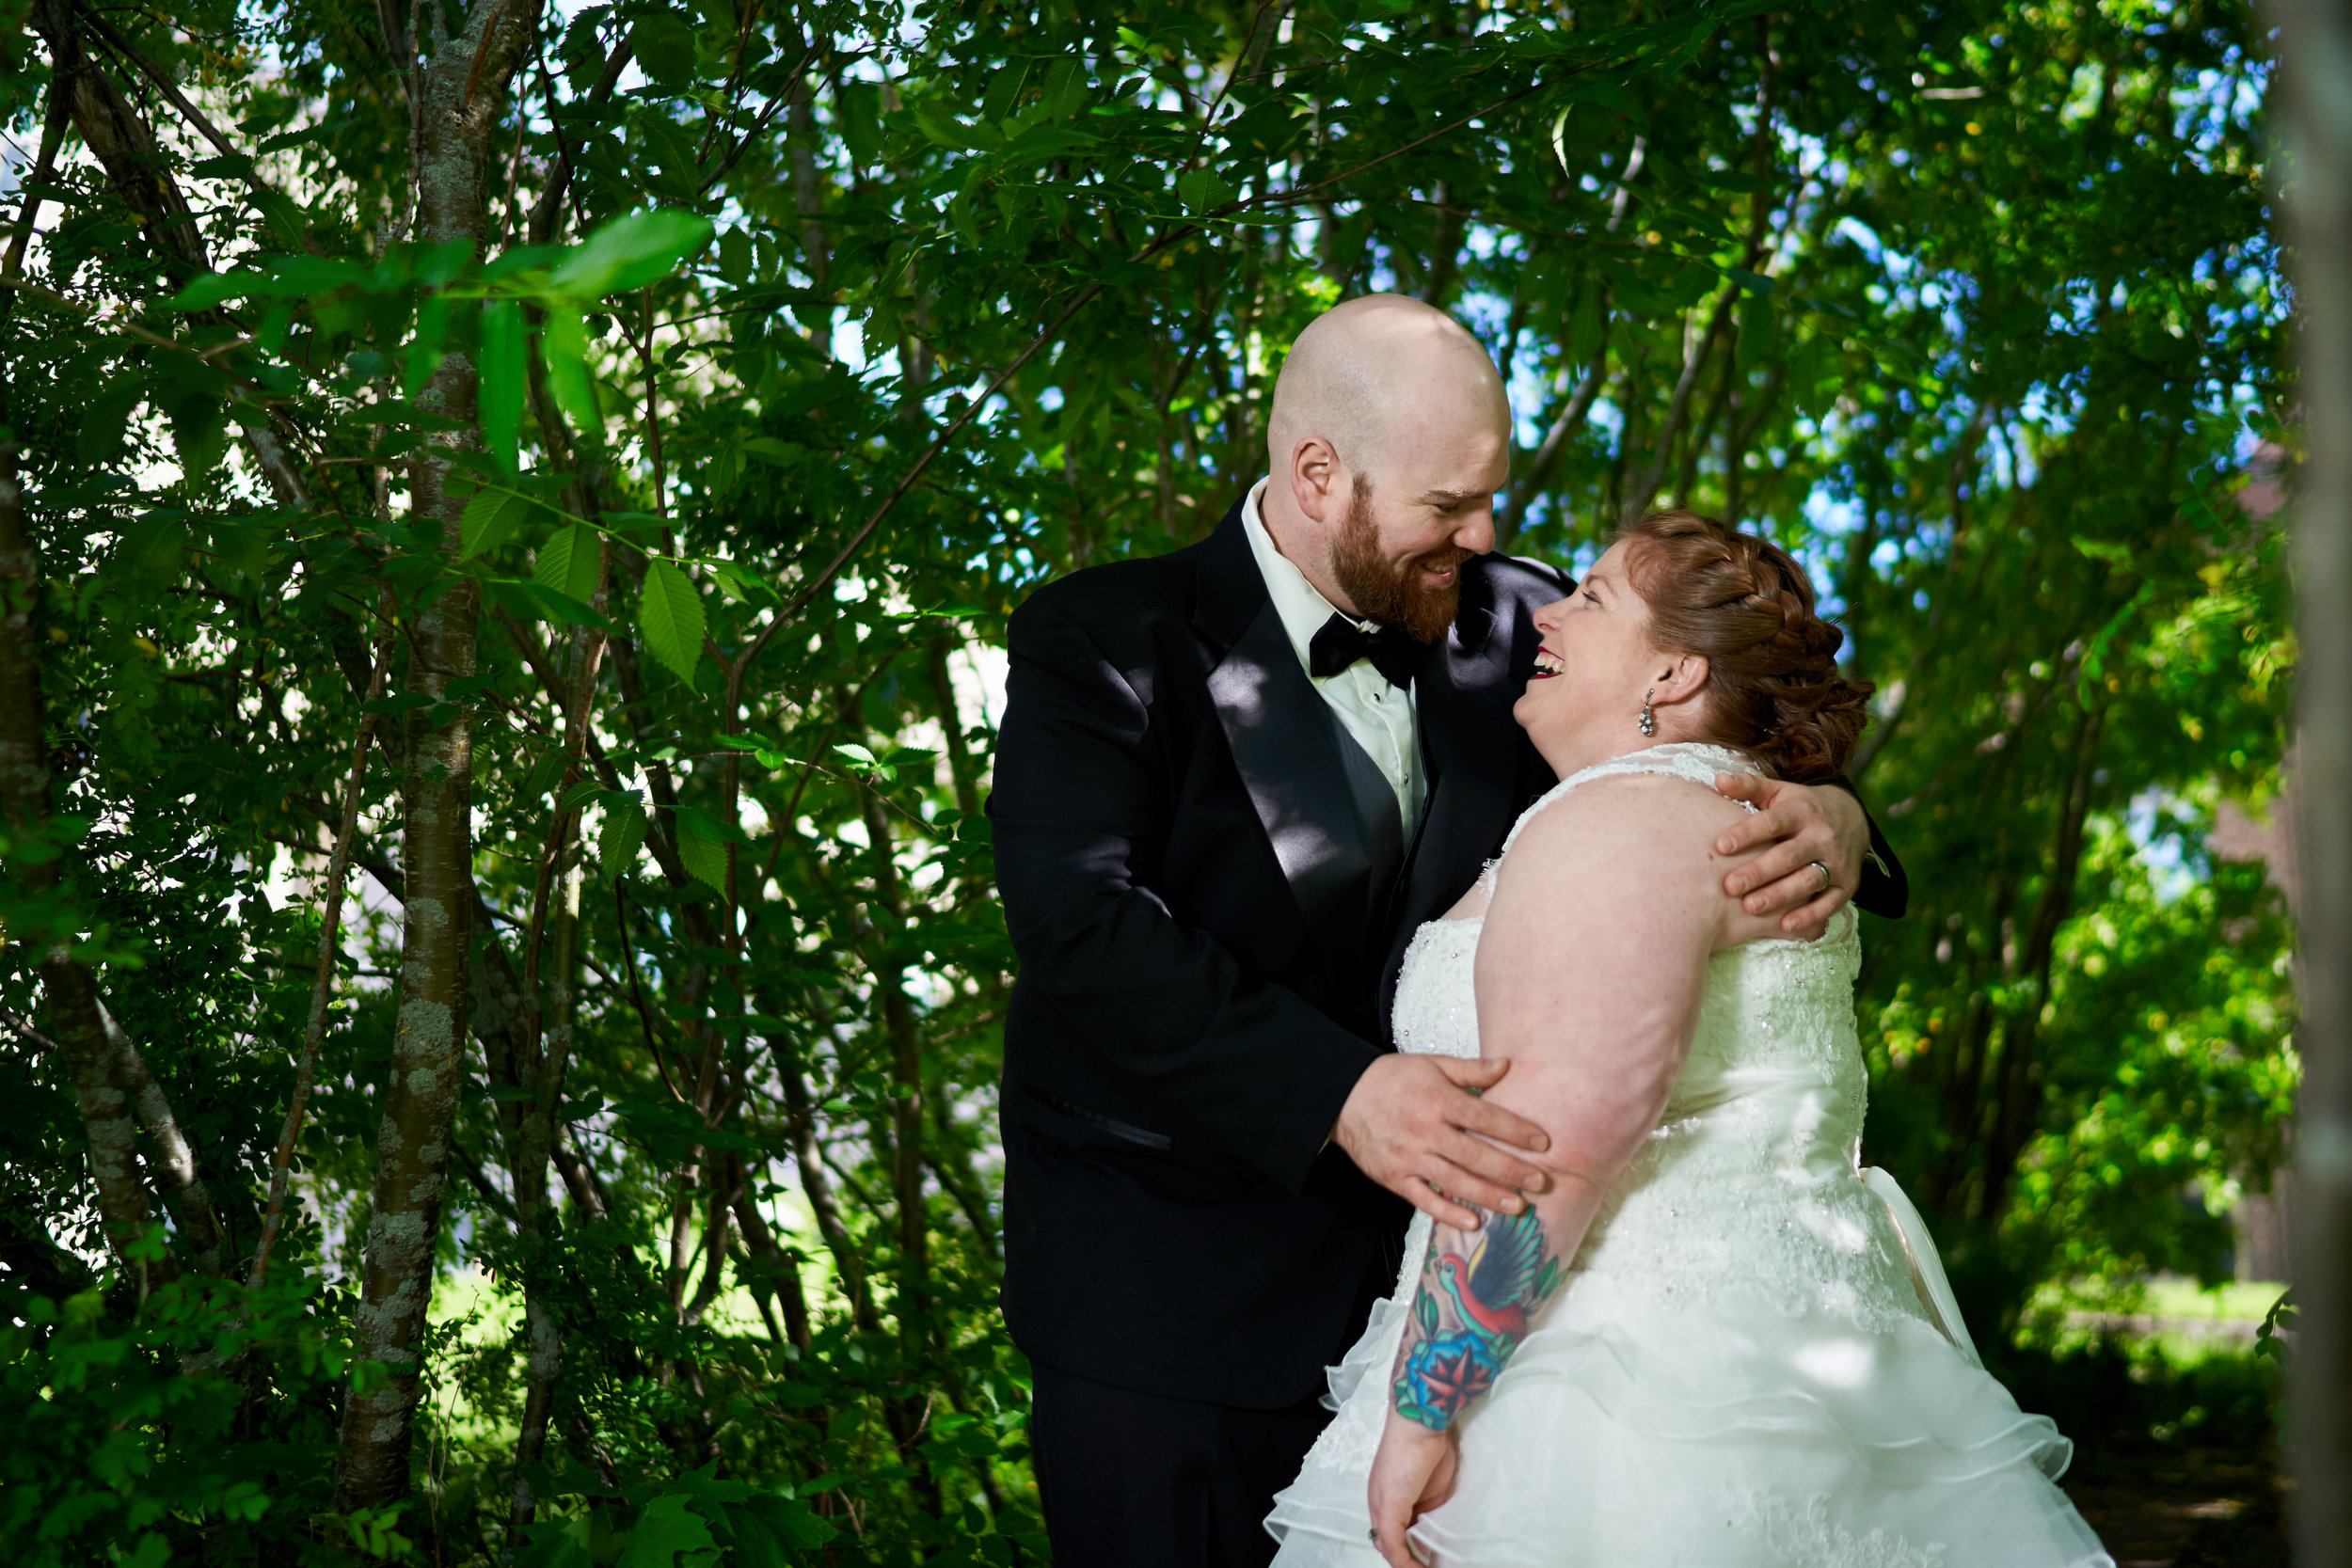 Roxanne & Derek Wedding 557.jpg